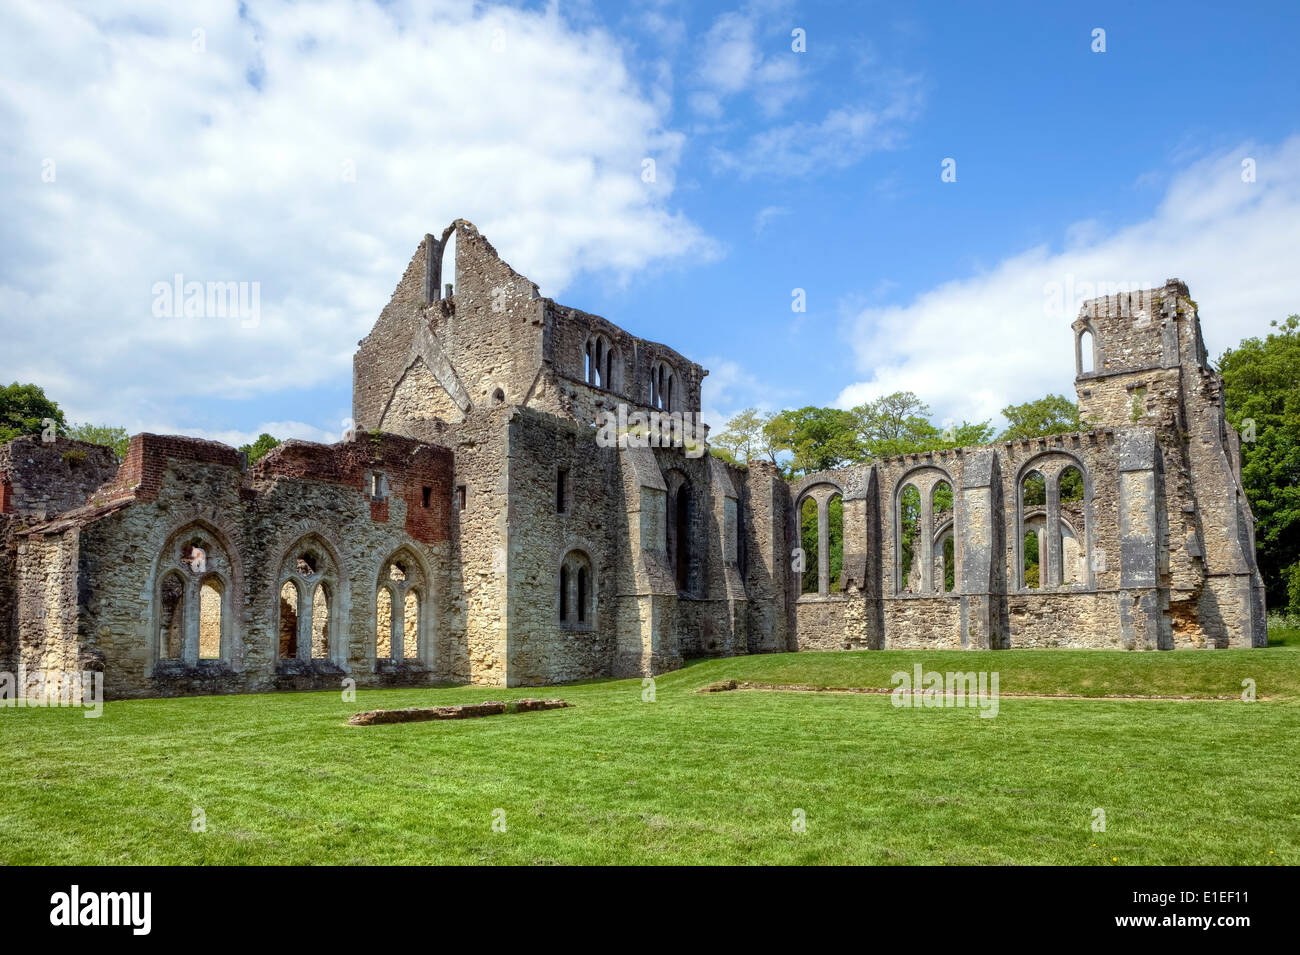 Netley Abbey, Southampton, England, United Kingdom - Stock Image